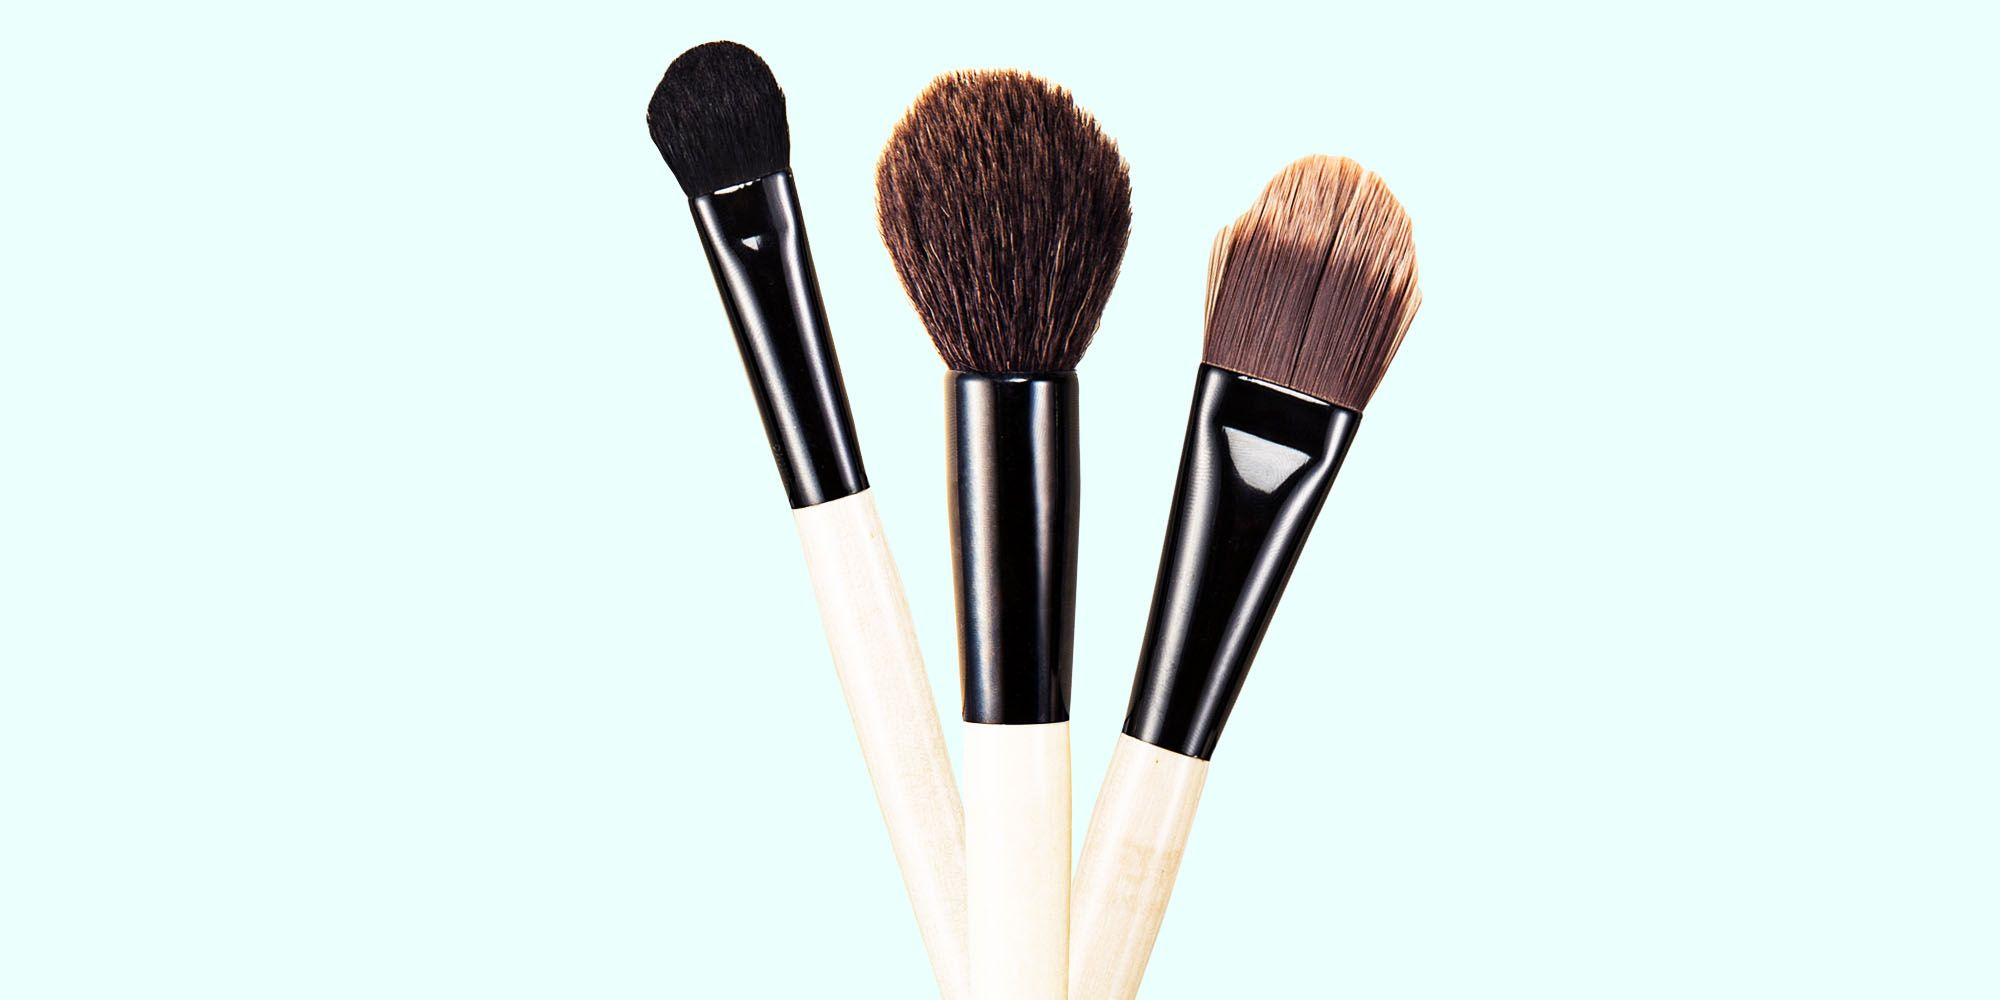 969a952dde8a11 How to clean makeup brushes at home - how to wash makeup brushes and ...